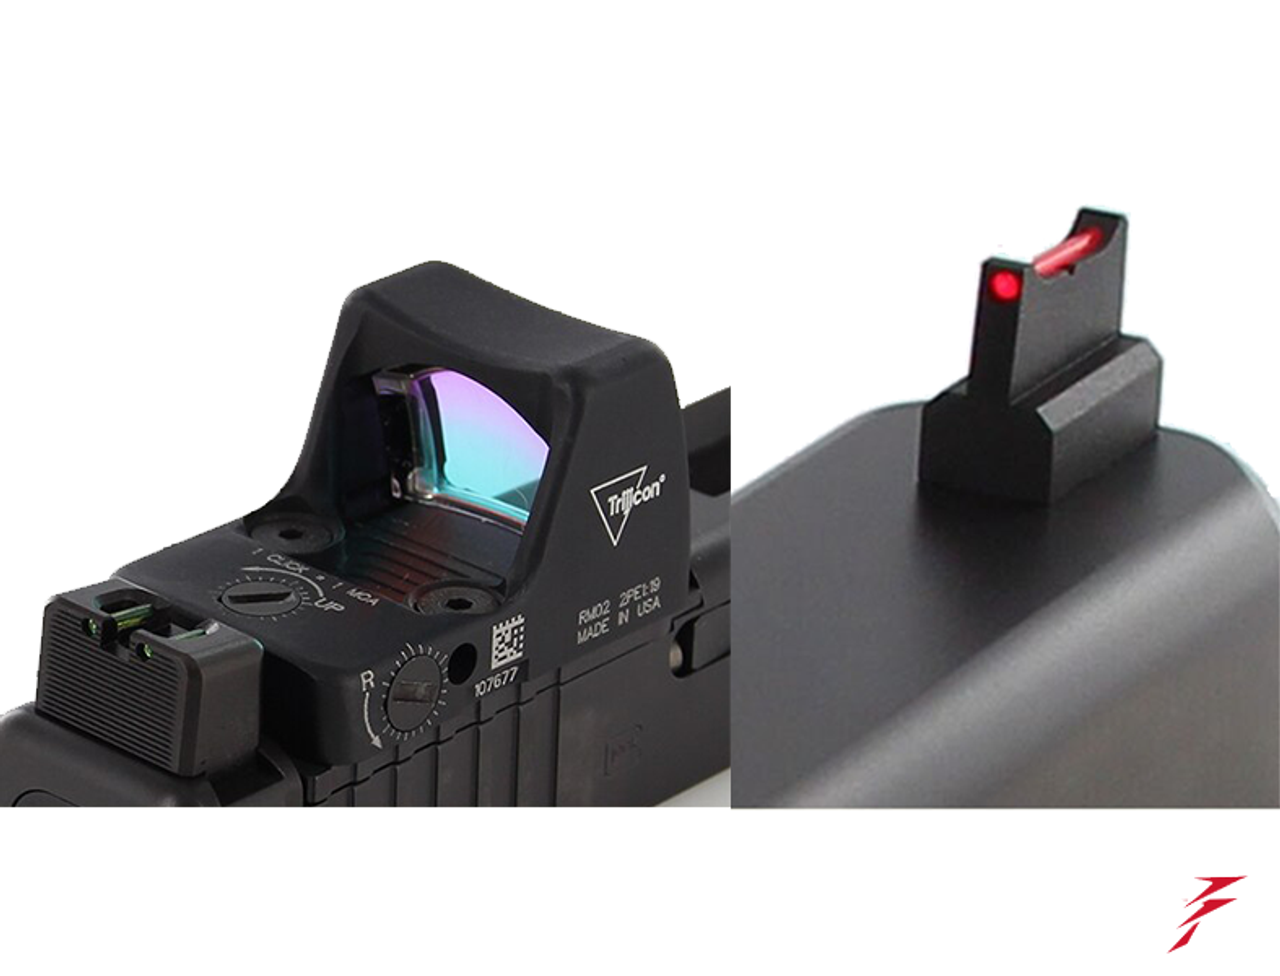 Dawson Precision Glock Gen5 G17/G19 MOS Fixed Co-Witness Sight Set (For  Delta Point Pro, Vortex Razor and similar red dot scopes)